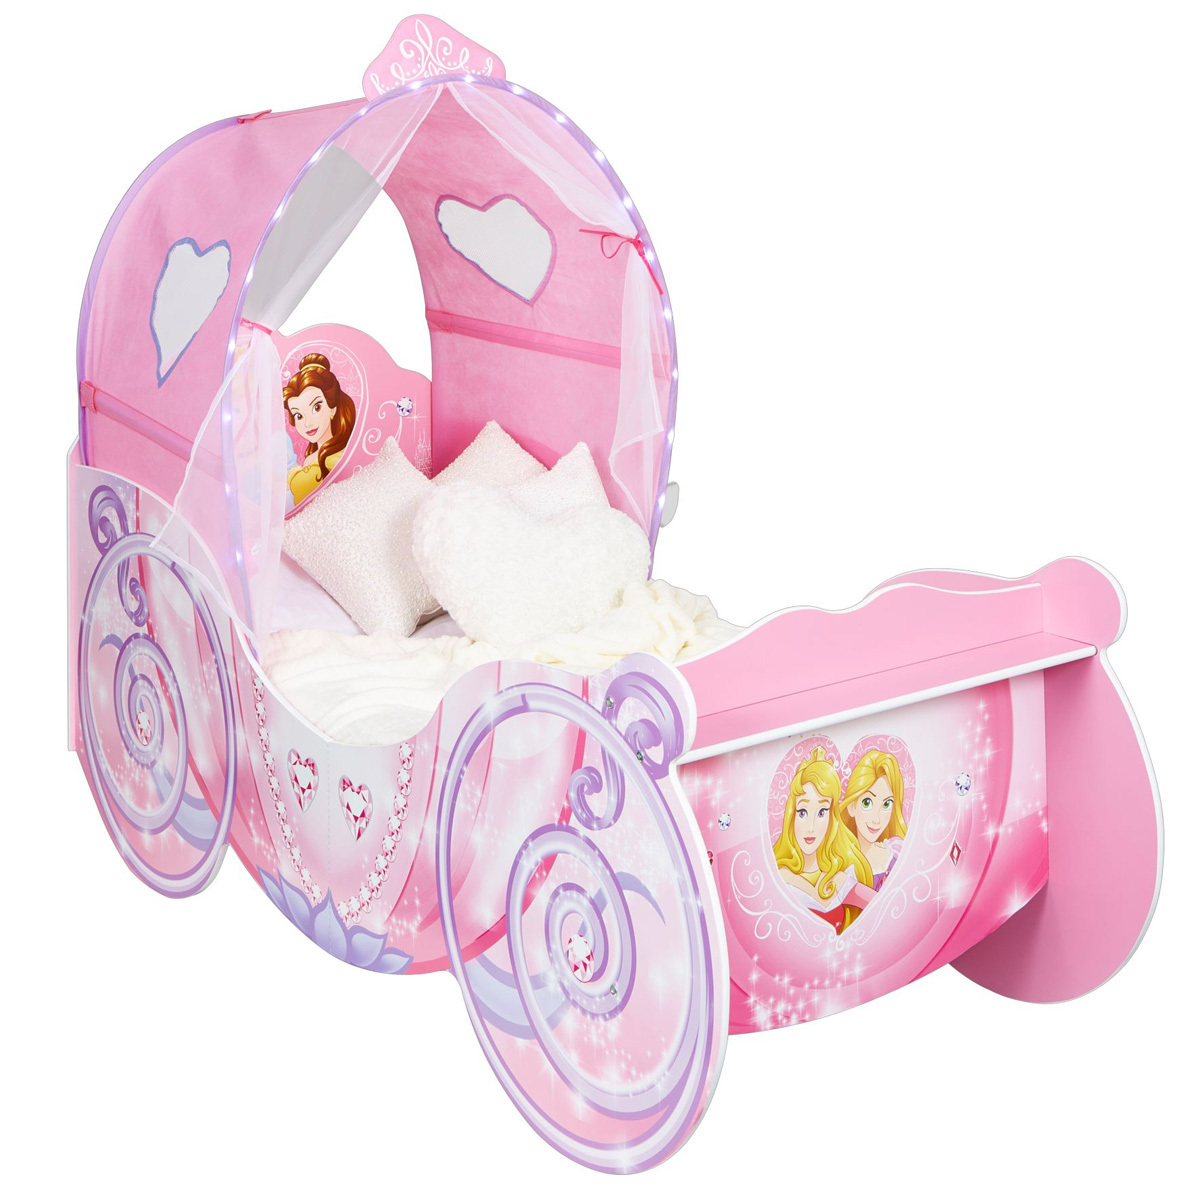 Disney Princess karet juniorseng m. madr